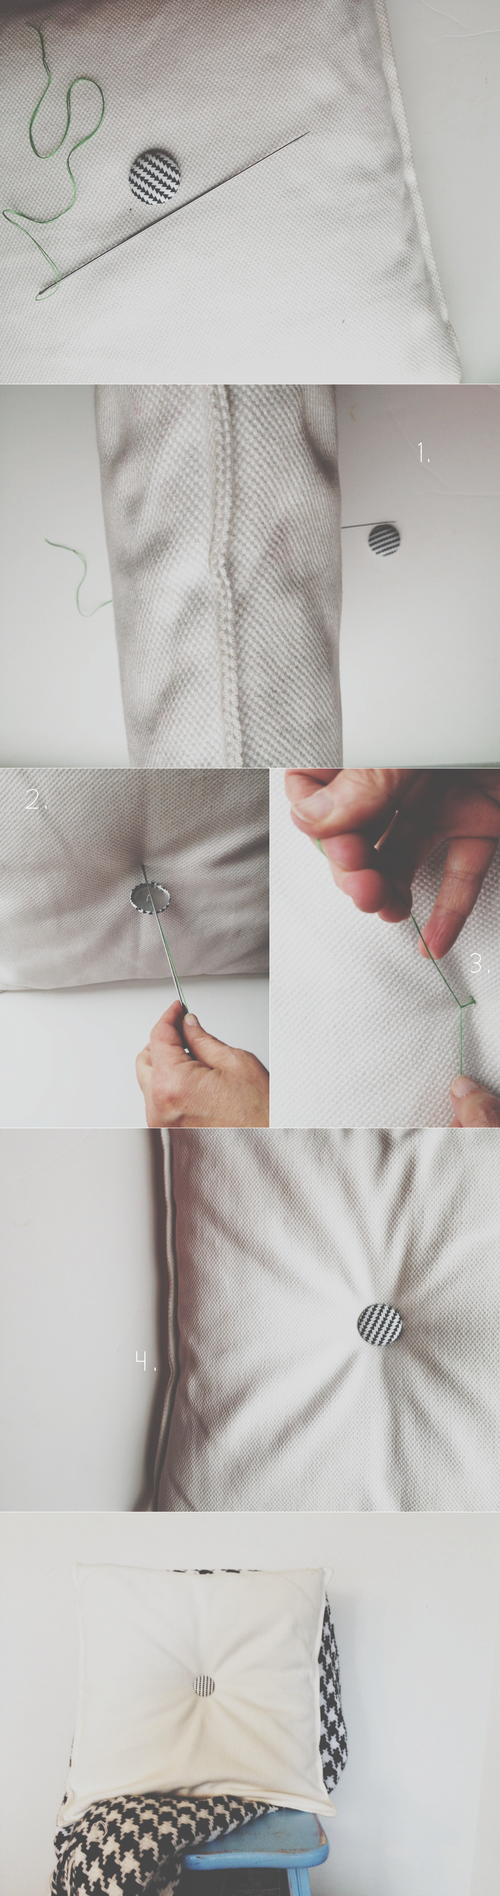 tufted pillow instructions